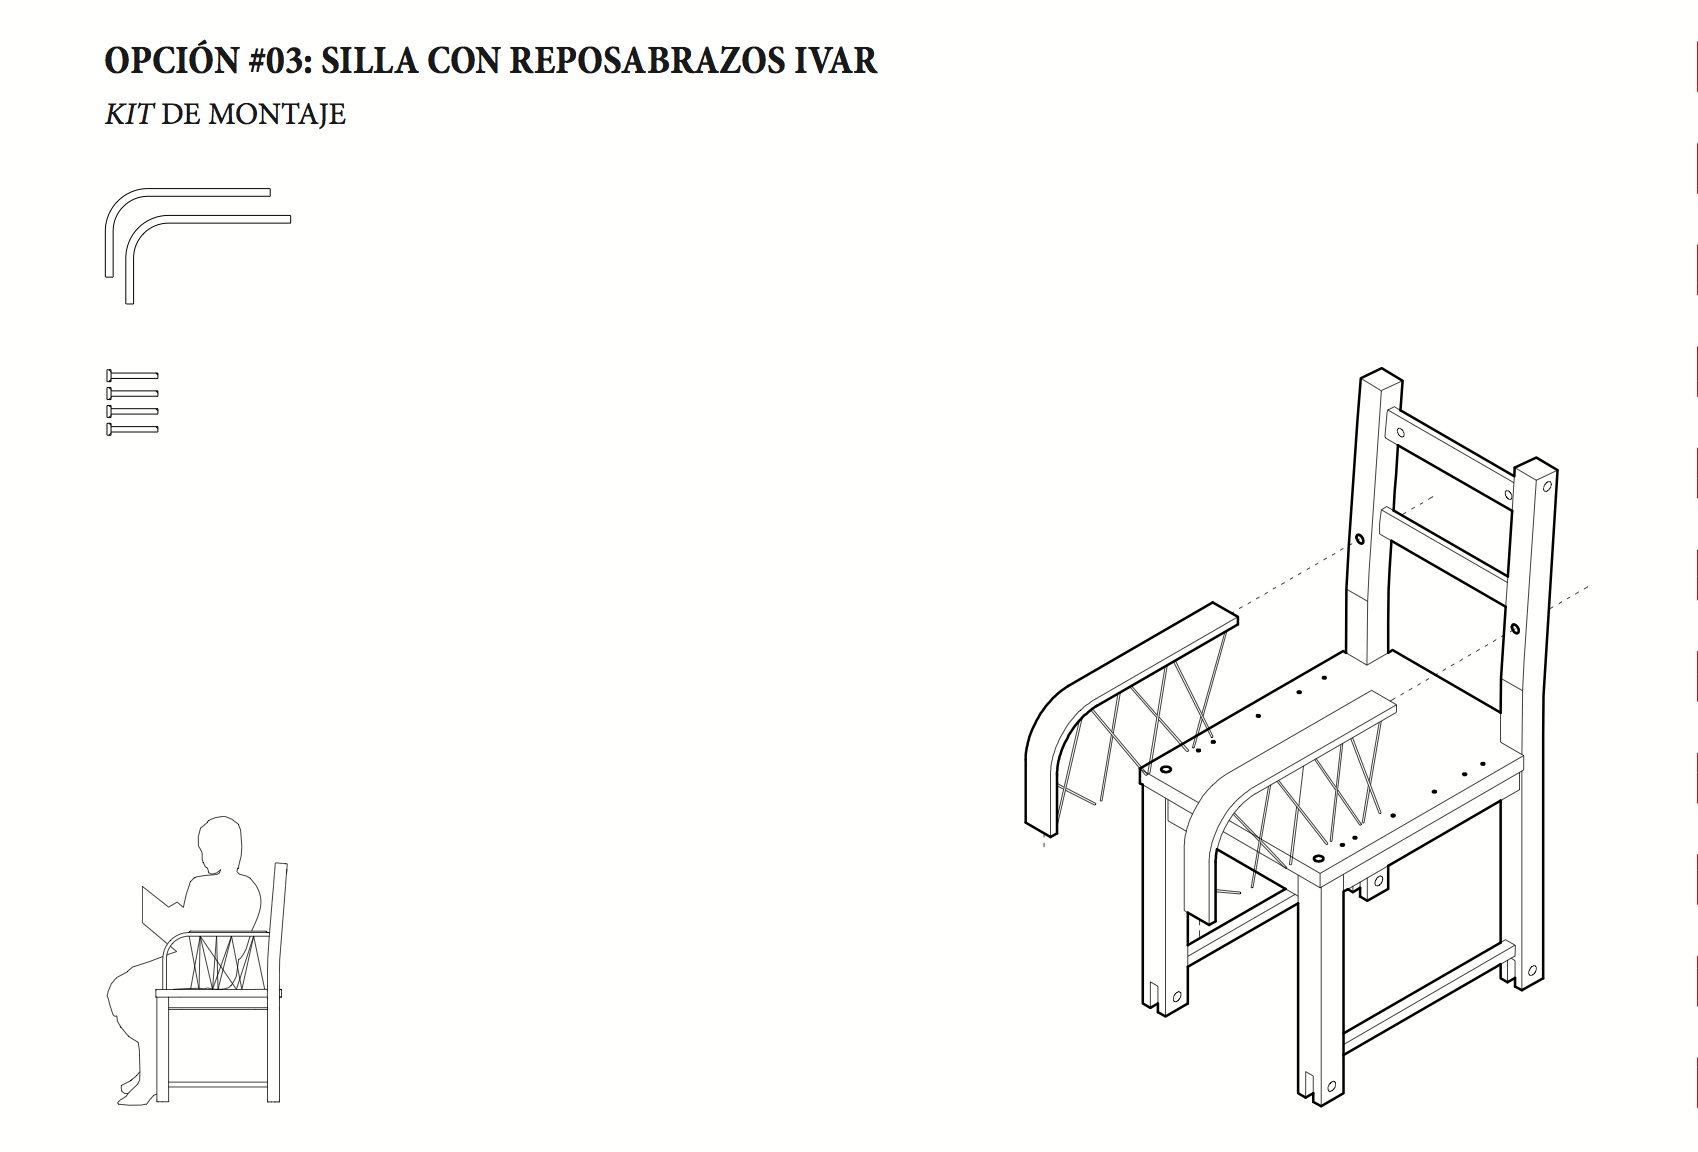 Silla all in one ivar la errer a archdaily m xico - Sillas con reposabrazos ...